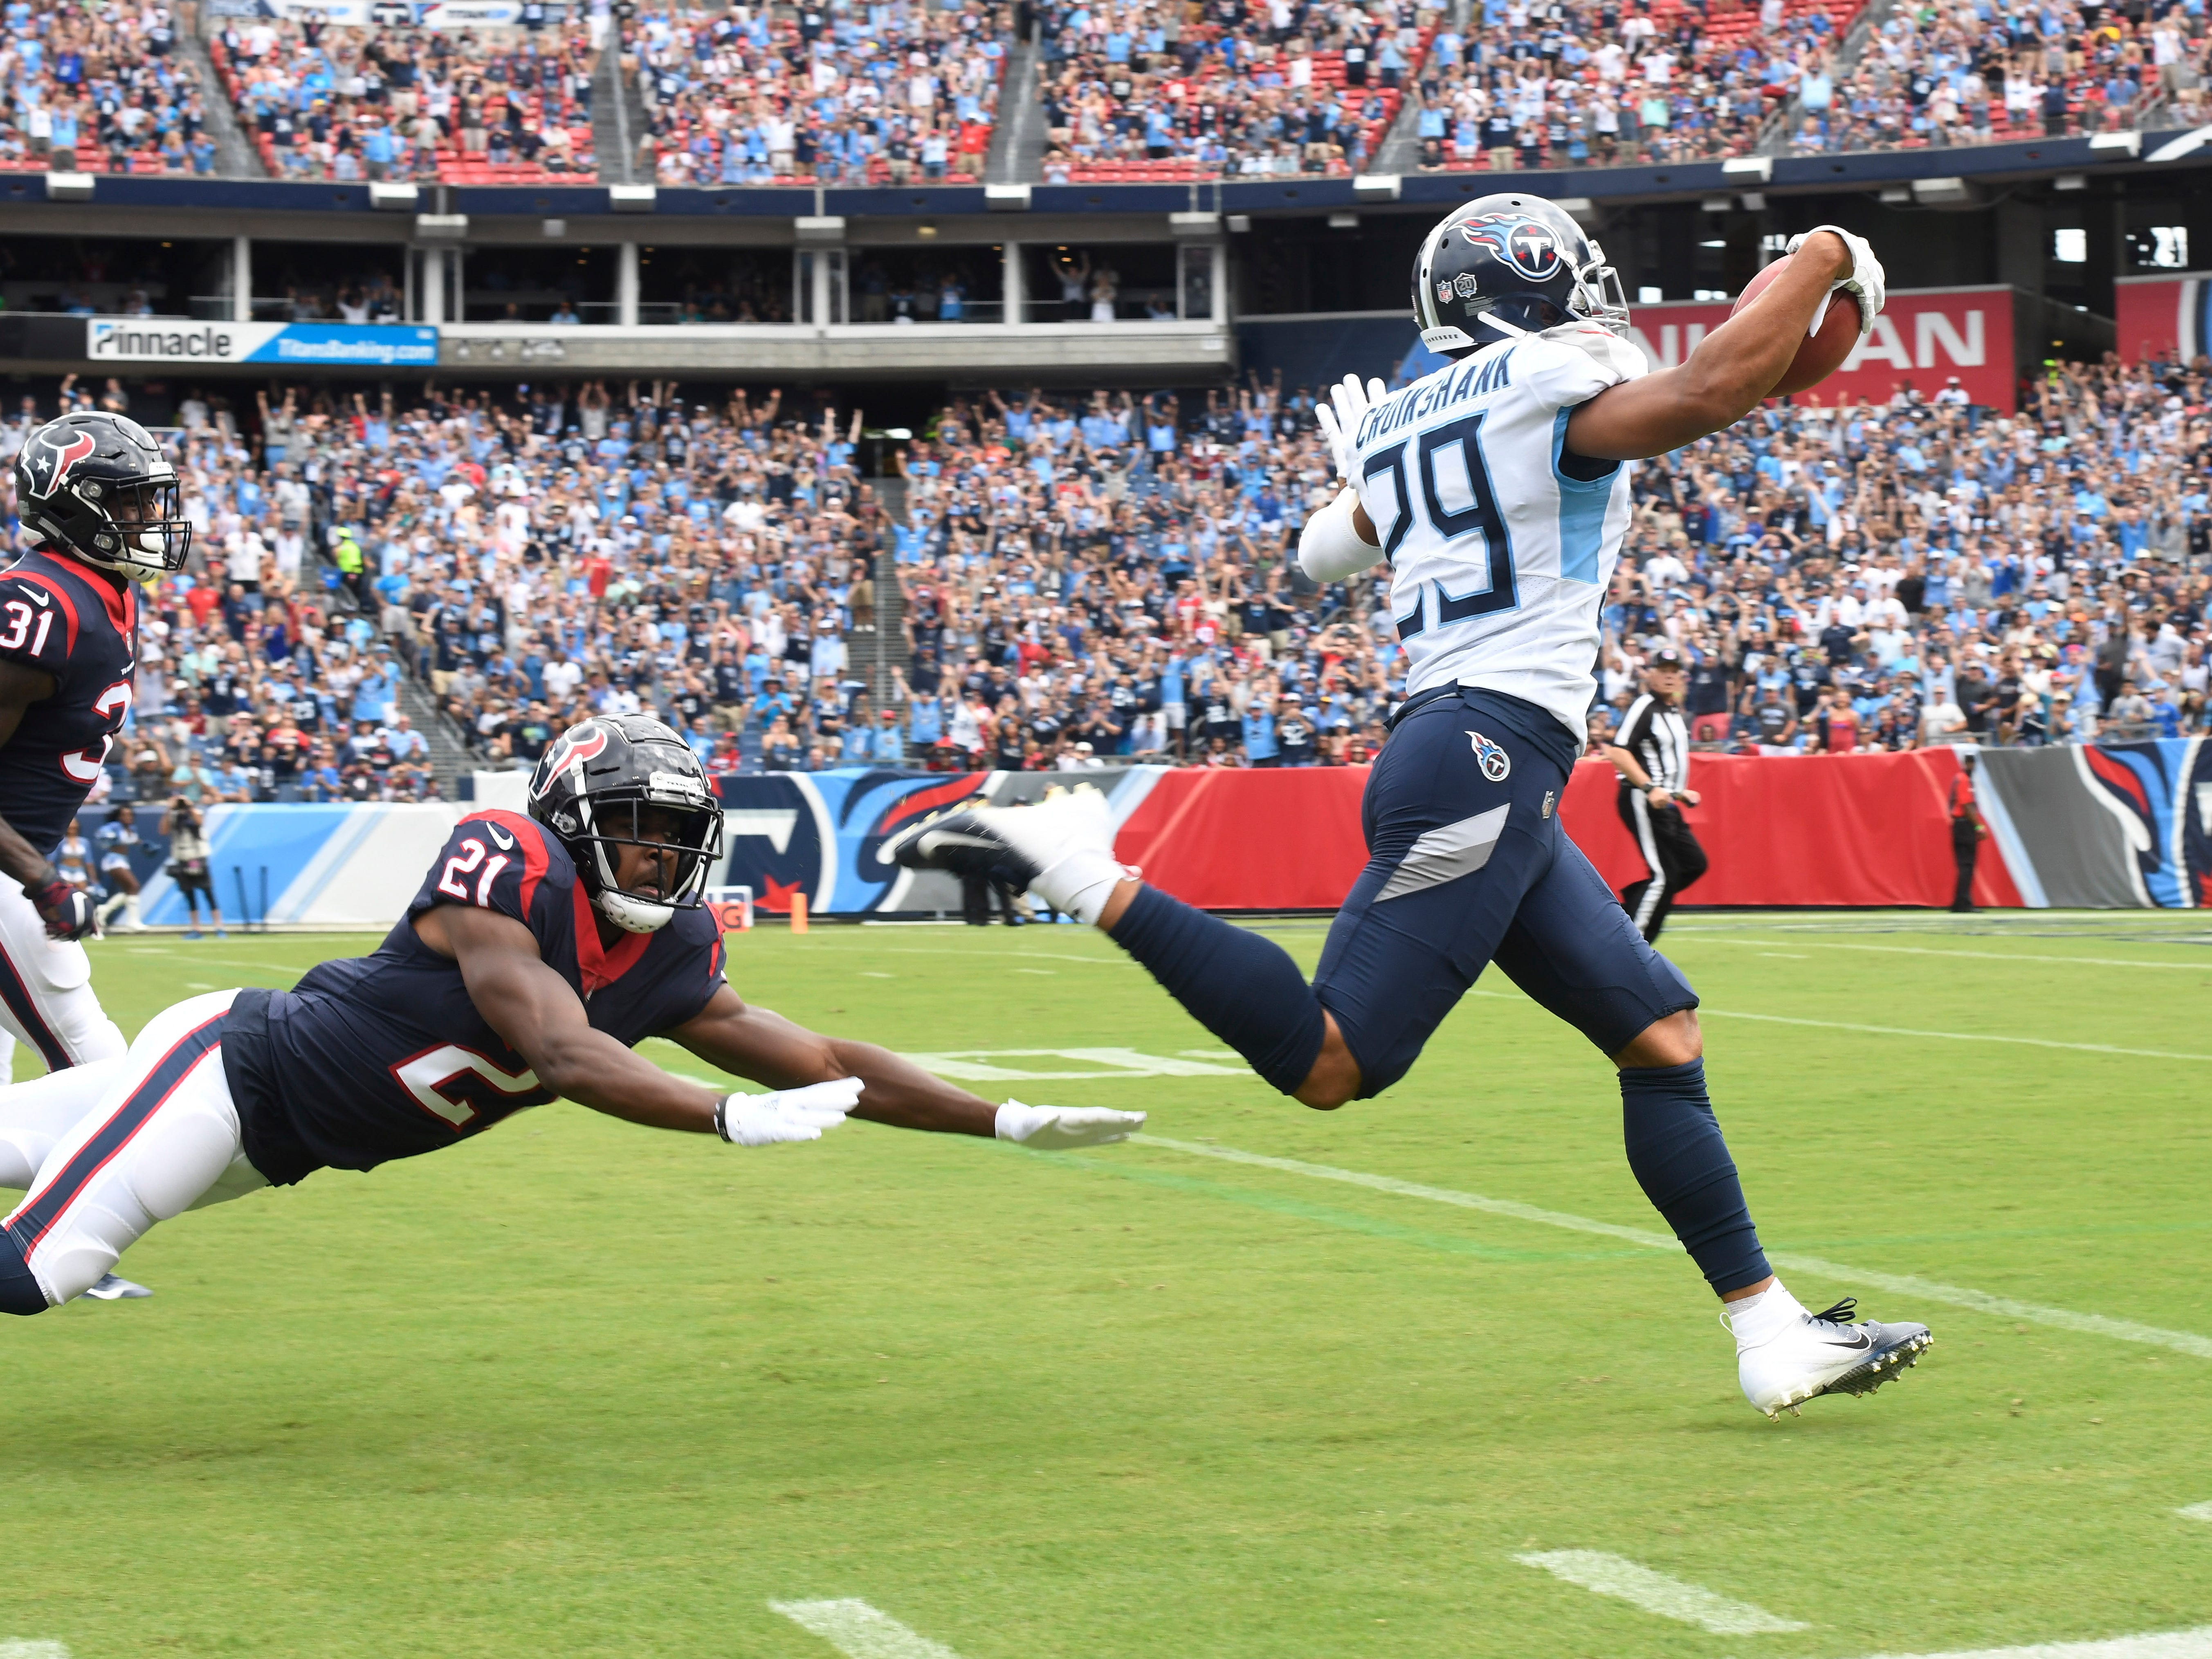 Texans running back Tyler Ervin (21) dives but can't stop a touchdown by Titans cornerback Dane Cruikshank (29) in the first quarter at Nissan Stadium Sunday, Sept. 16, 2018, in Nashville, Tenn.